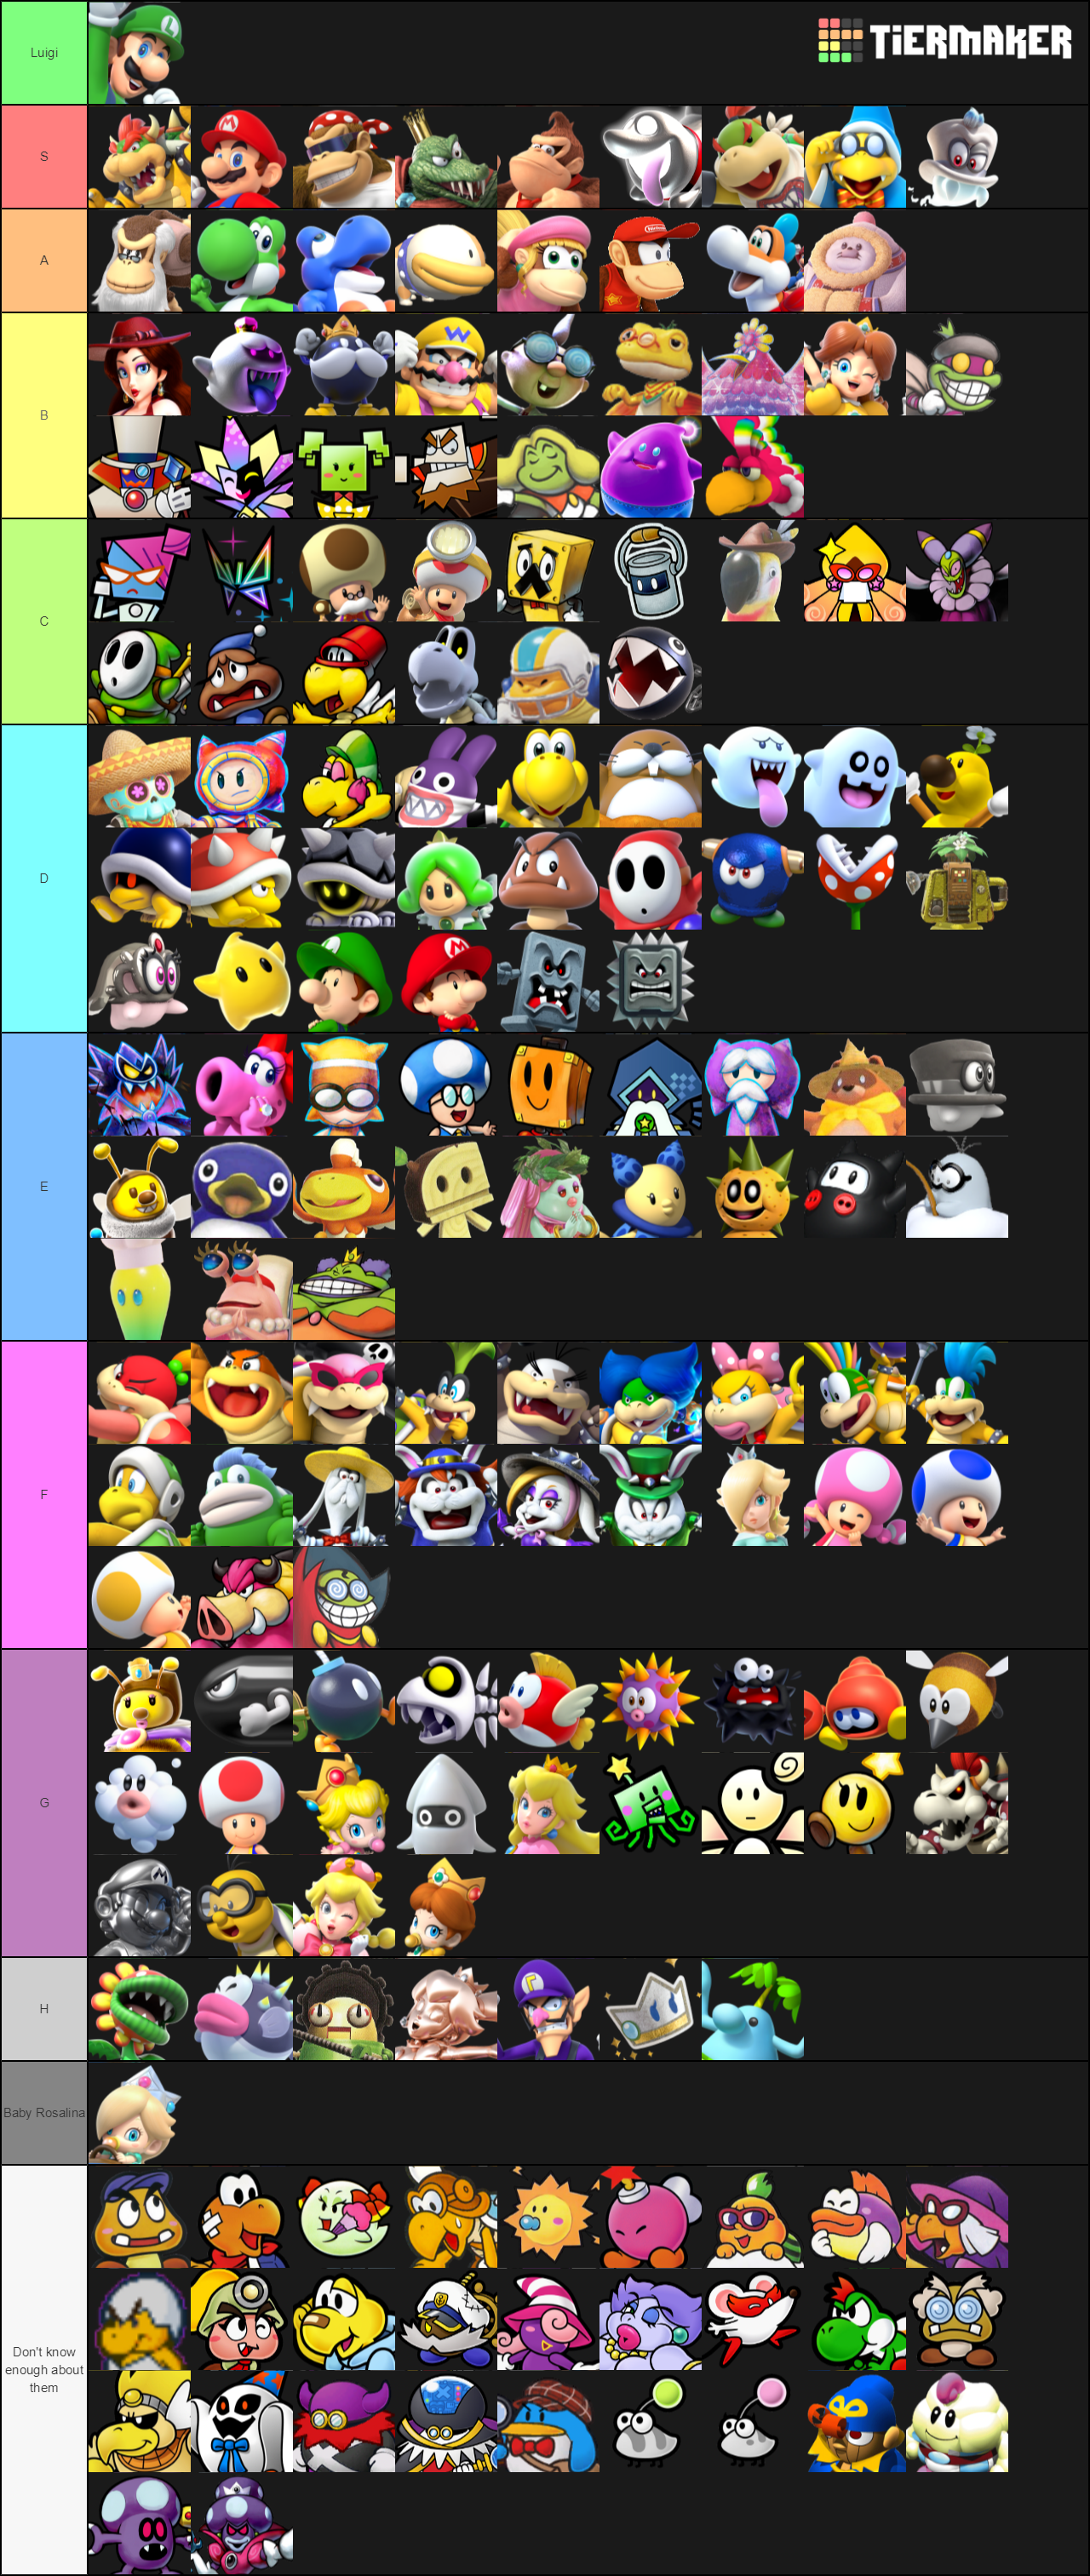 Ultimate Mario Character Tier List By Iwatchcartoons715 On Deviantart